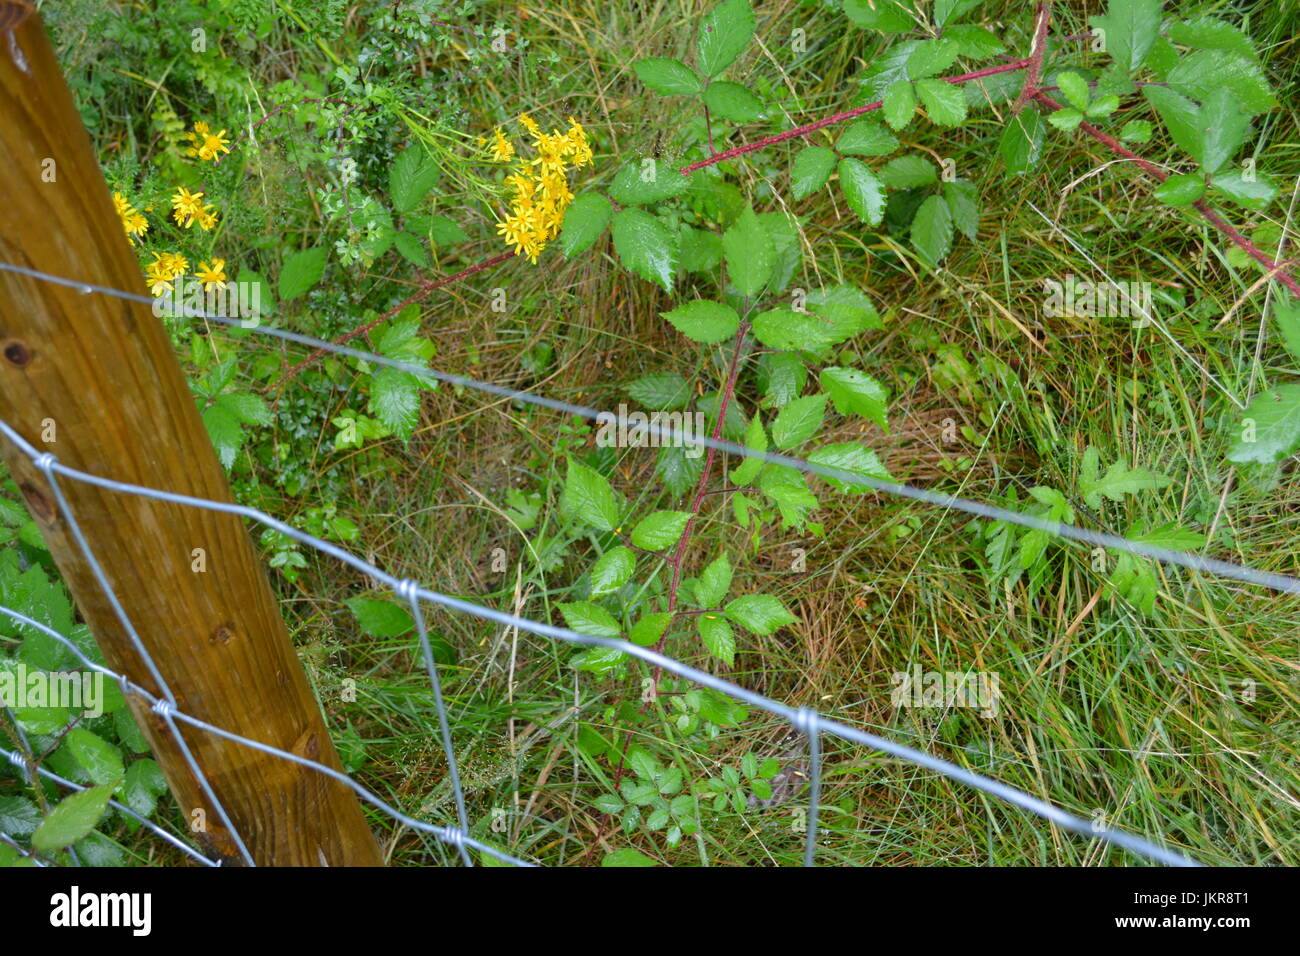 Stock fence fencing with post upright in overgrown mature wild garden with thorns wild flowers and long grass in - Stock Image